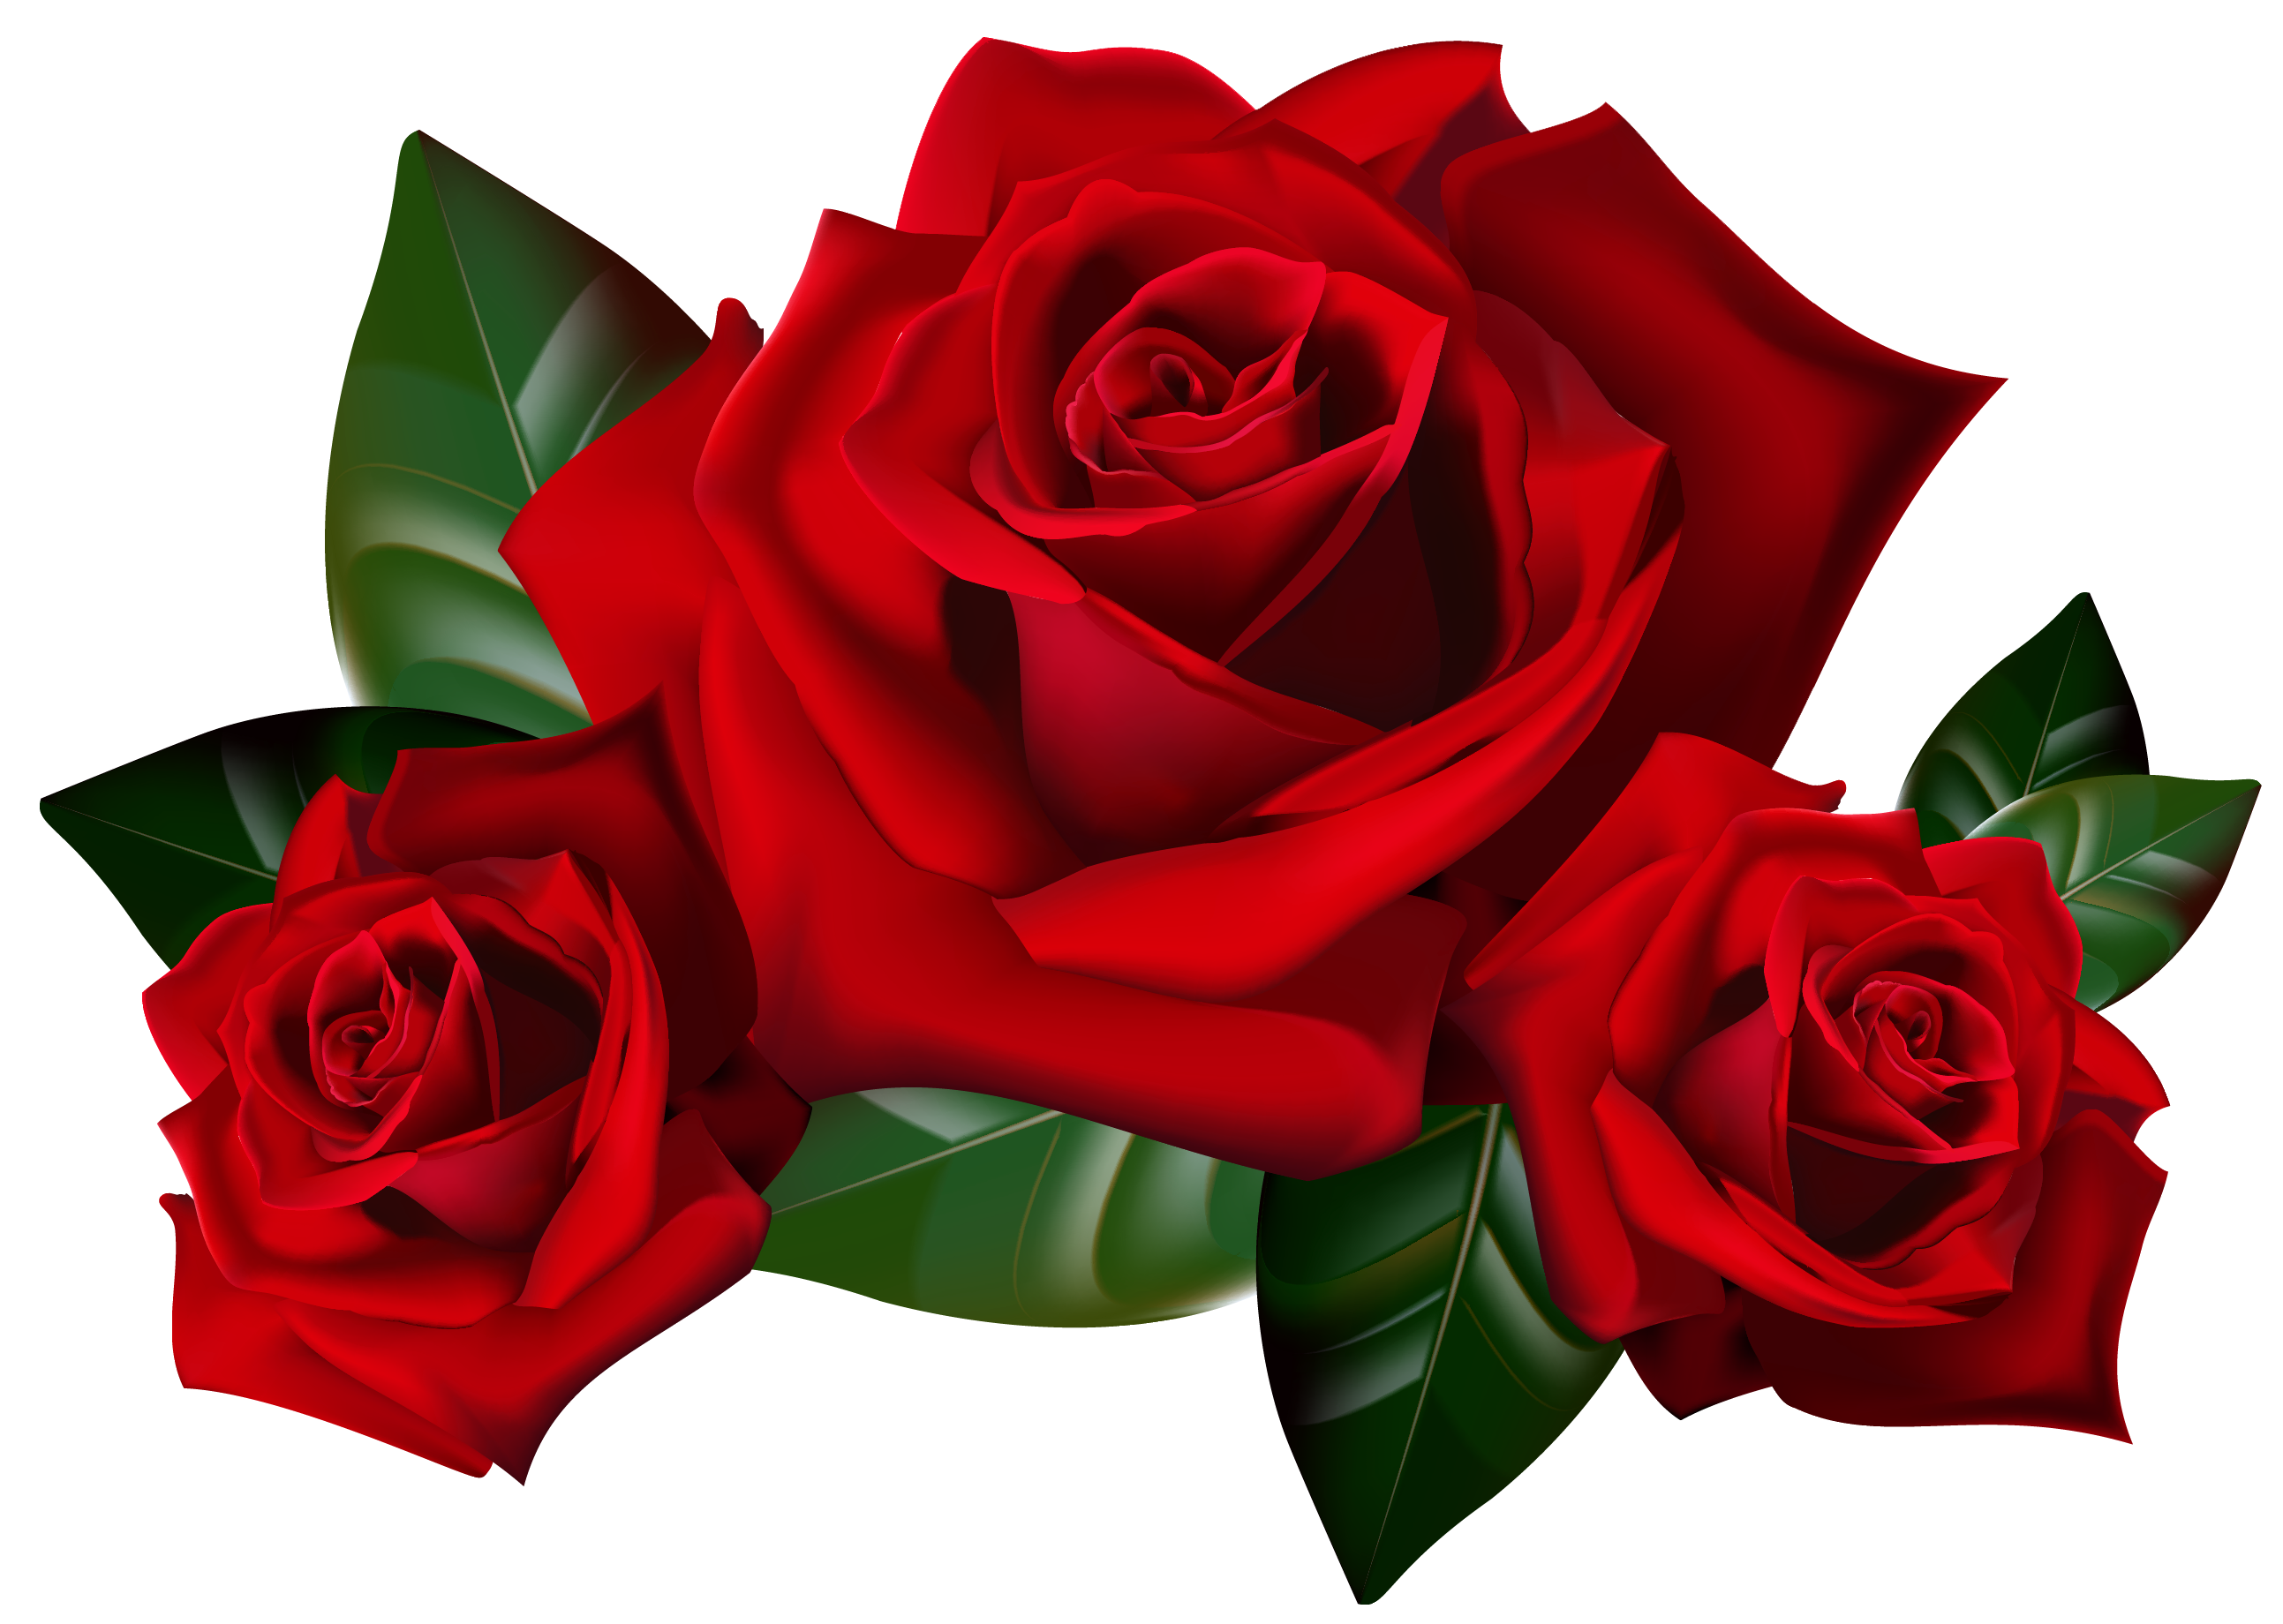 red roses clipart - photo #4